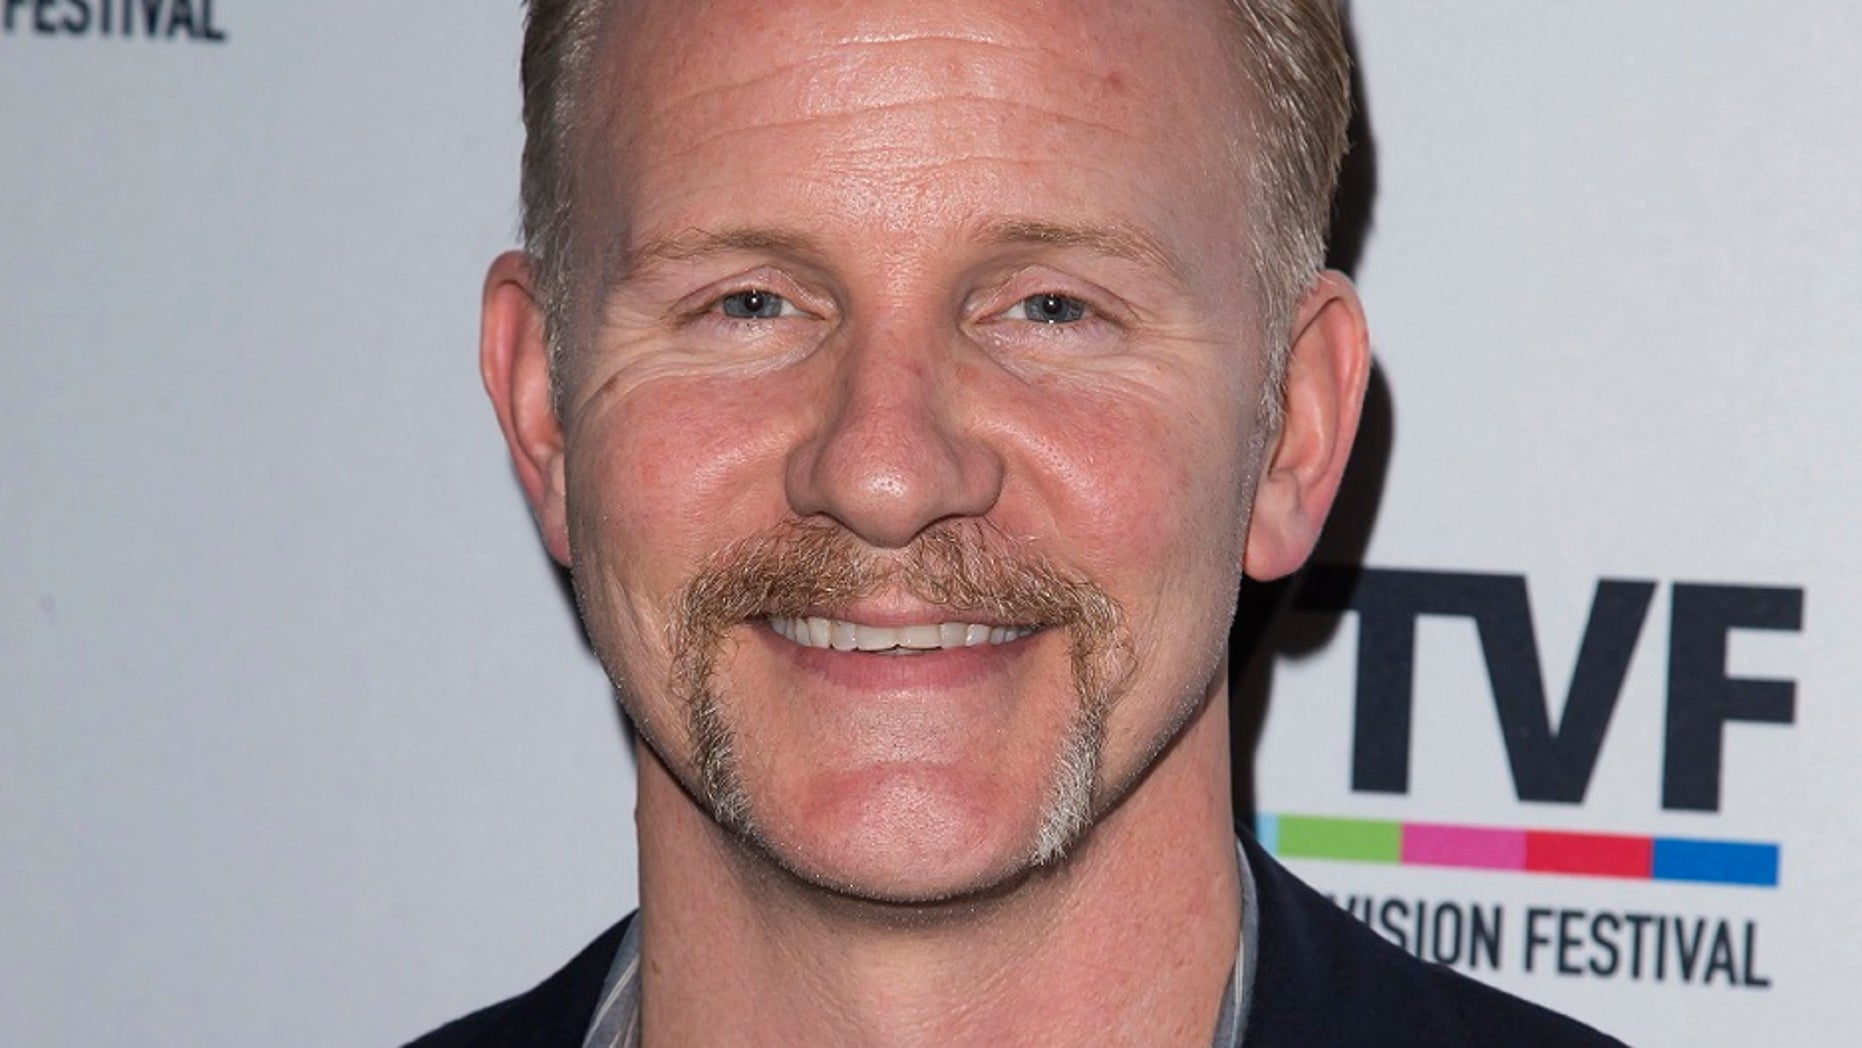 """FILE - In this Tuesday, Oct. 20, 2015, file photo, Morgan Spurlock attends an event at the SVA Theatre in New York. Declaring """"I am part of the problem,"""" Spurlock confessed in an online post Wednesday, Dec. 13, 2017, to sexual harassment, infidelity and said a woman accused him of rape in college."""